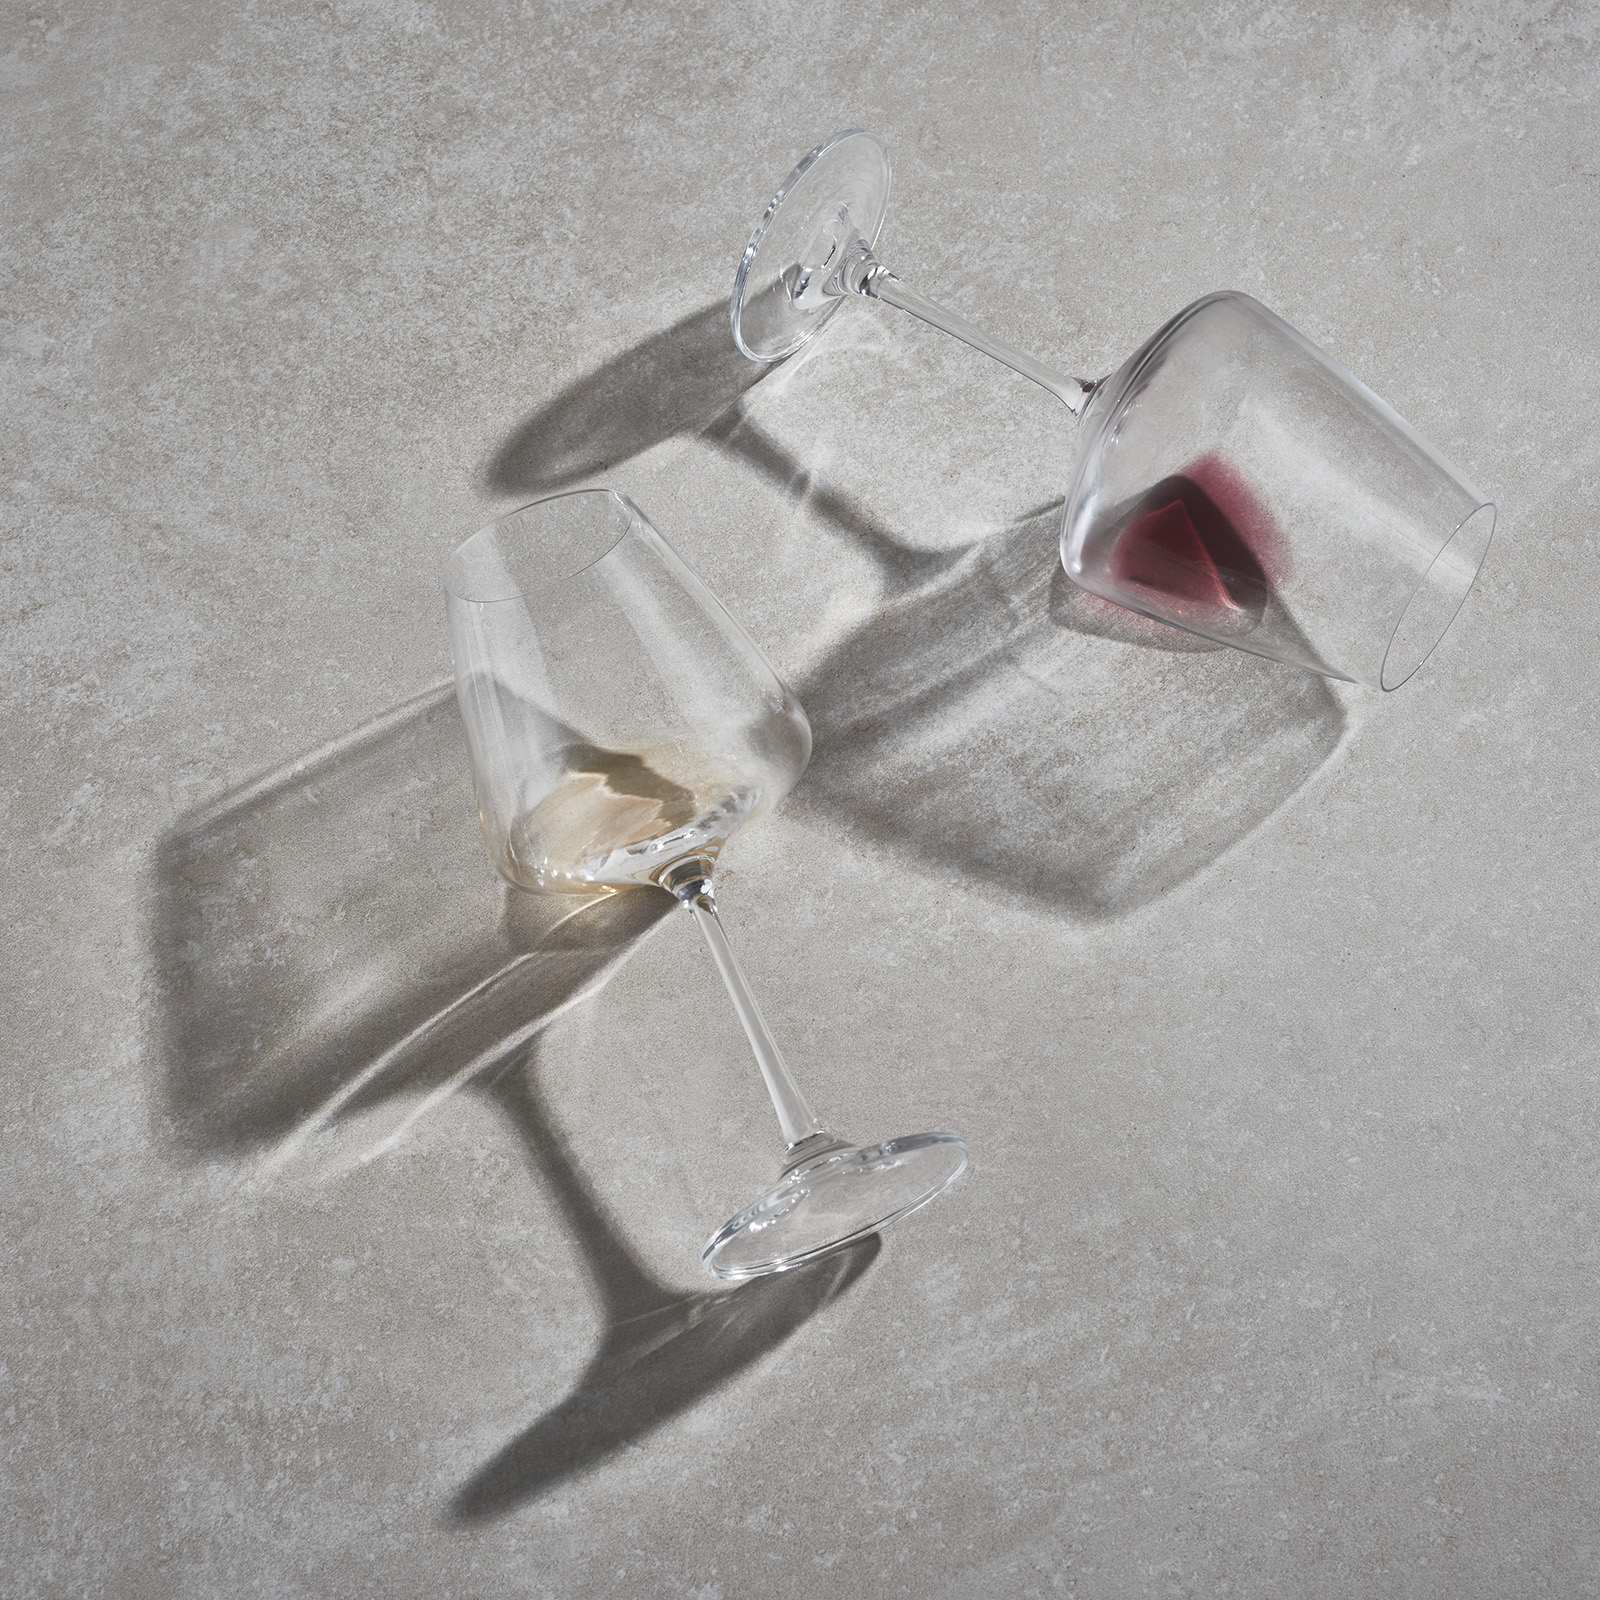 STILL_LIFE_WINE_GLASSES